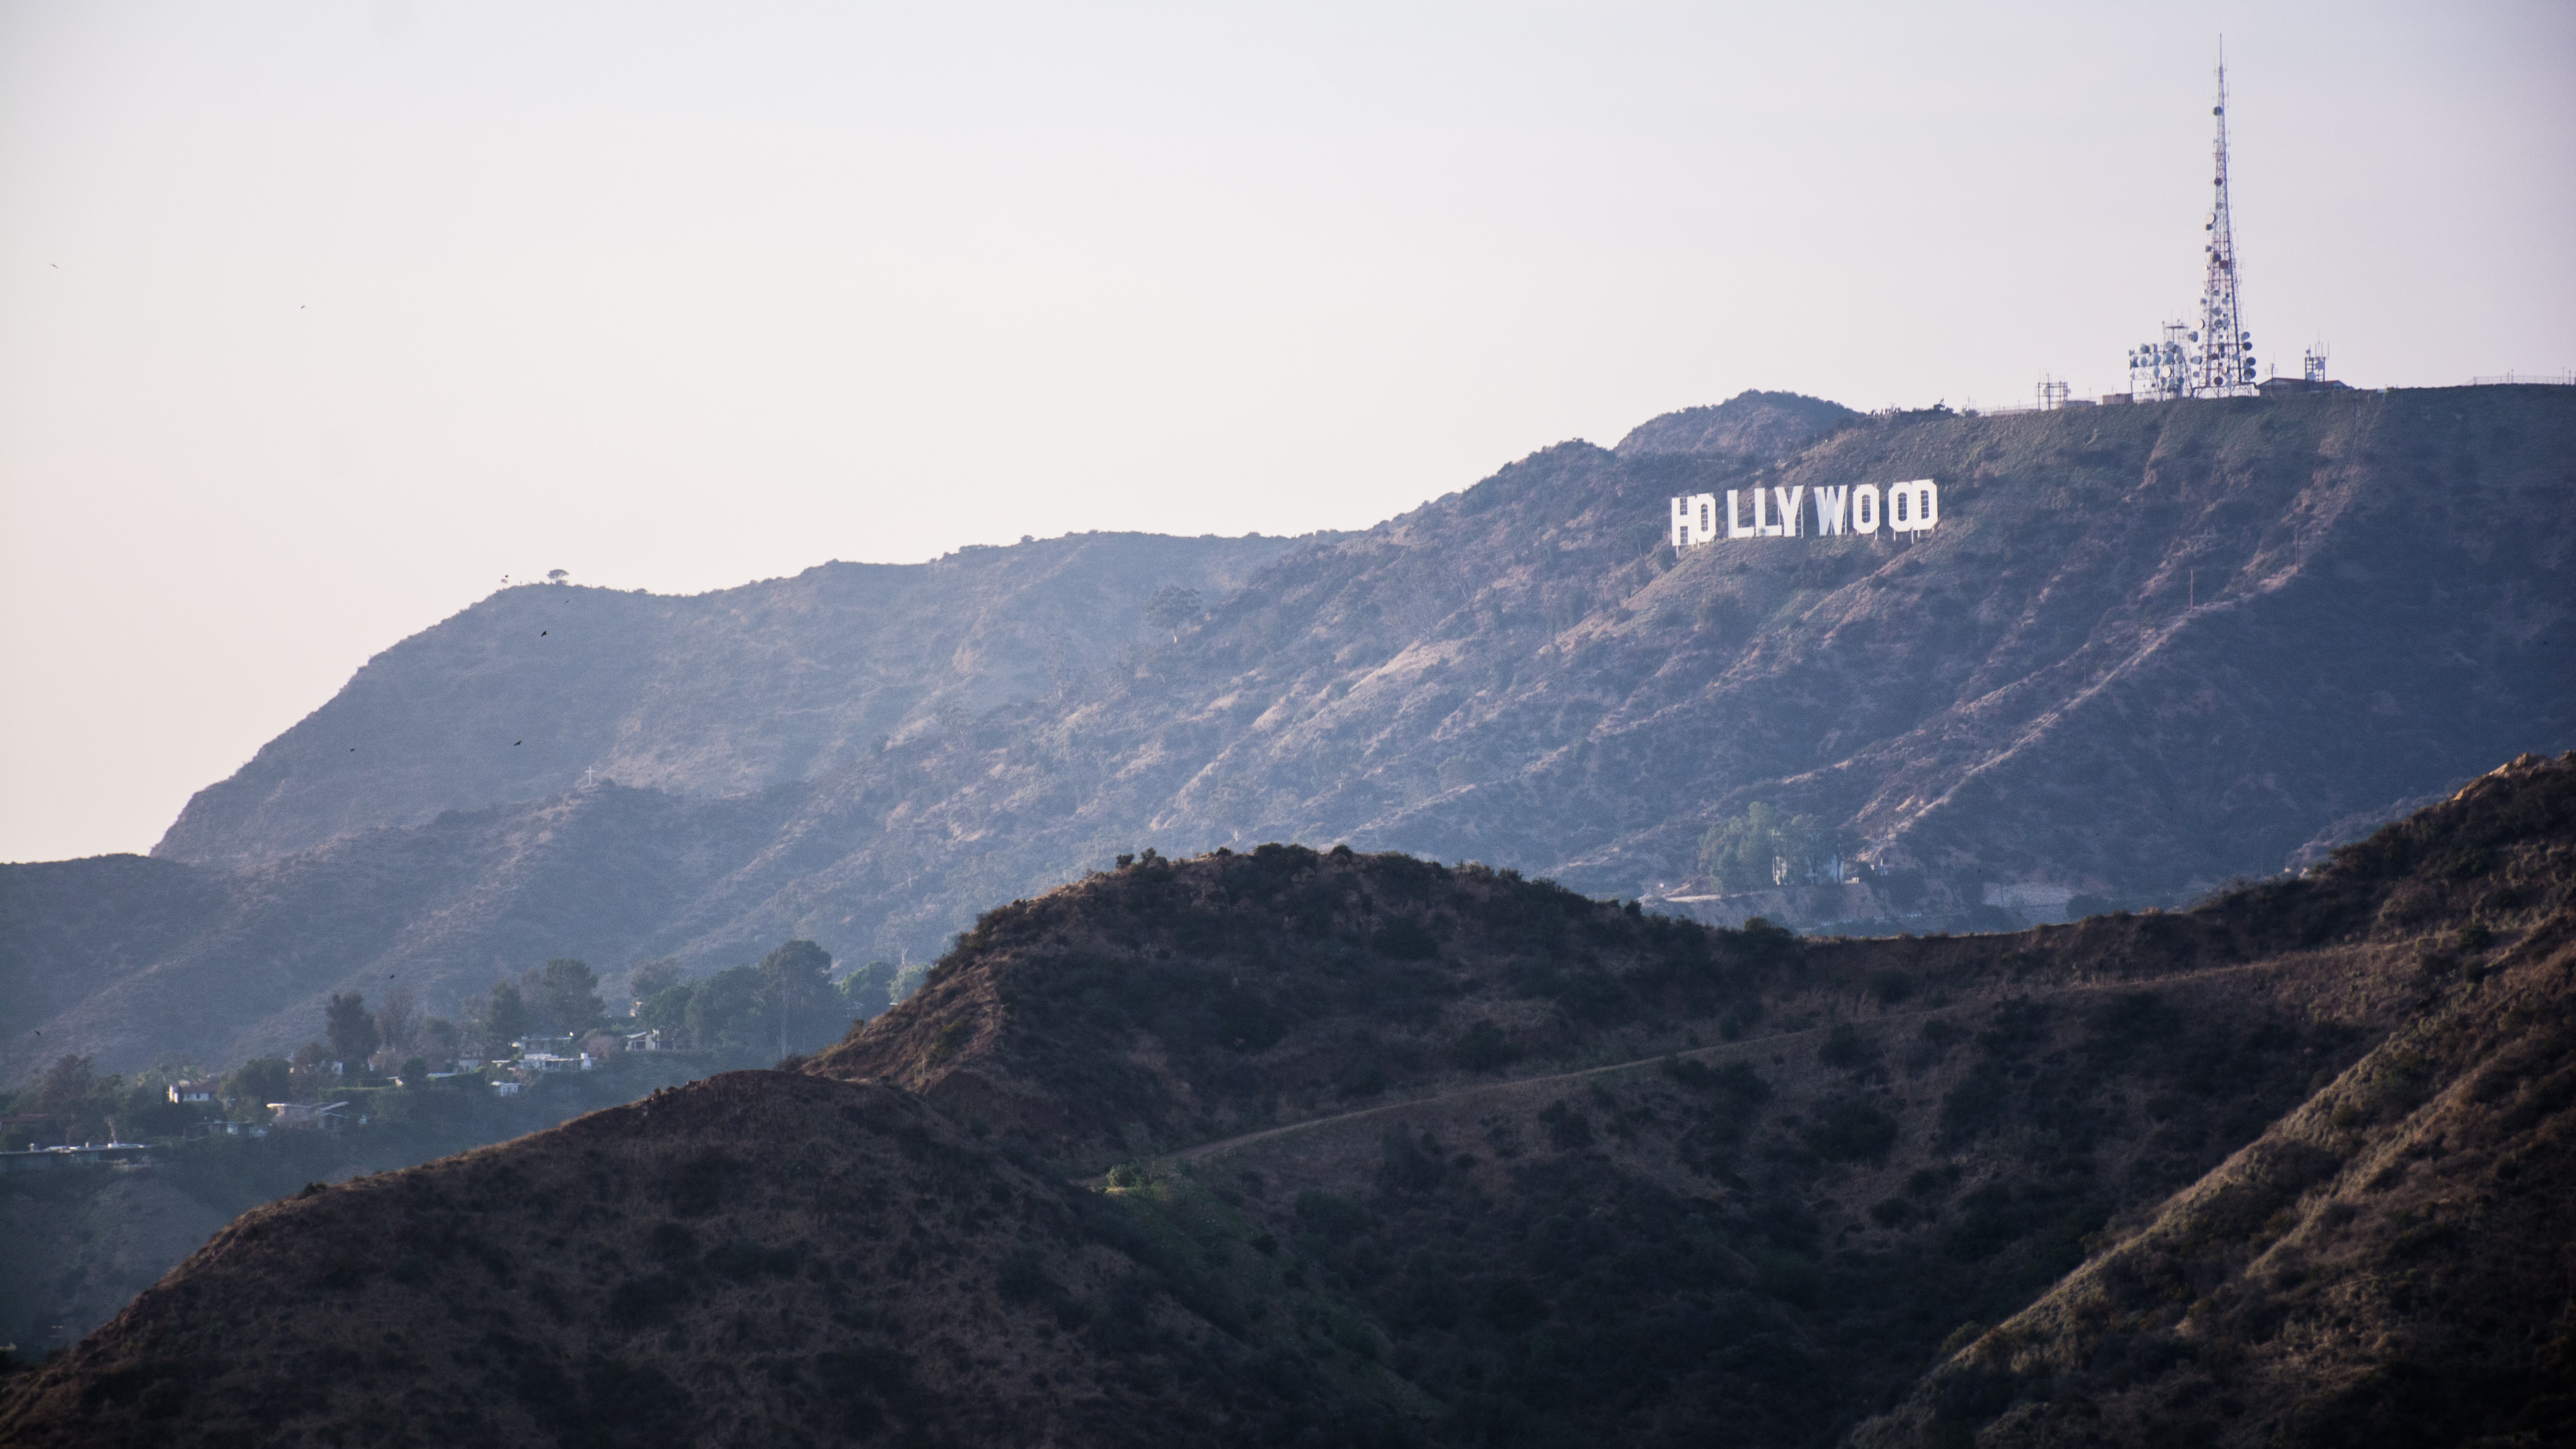 Hollywood mountain